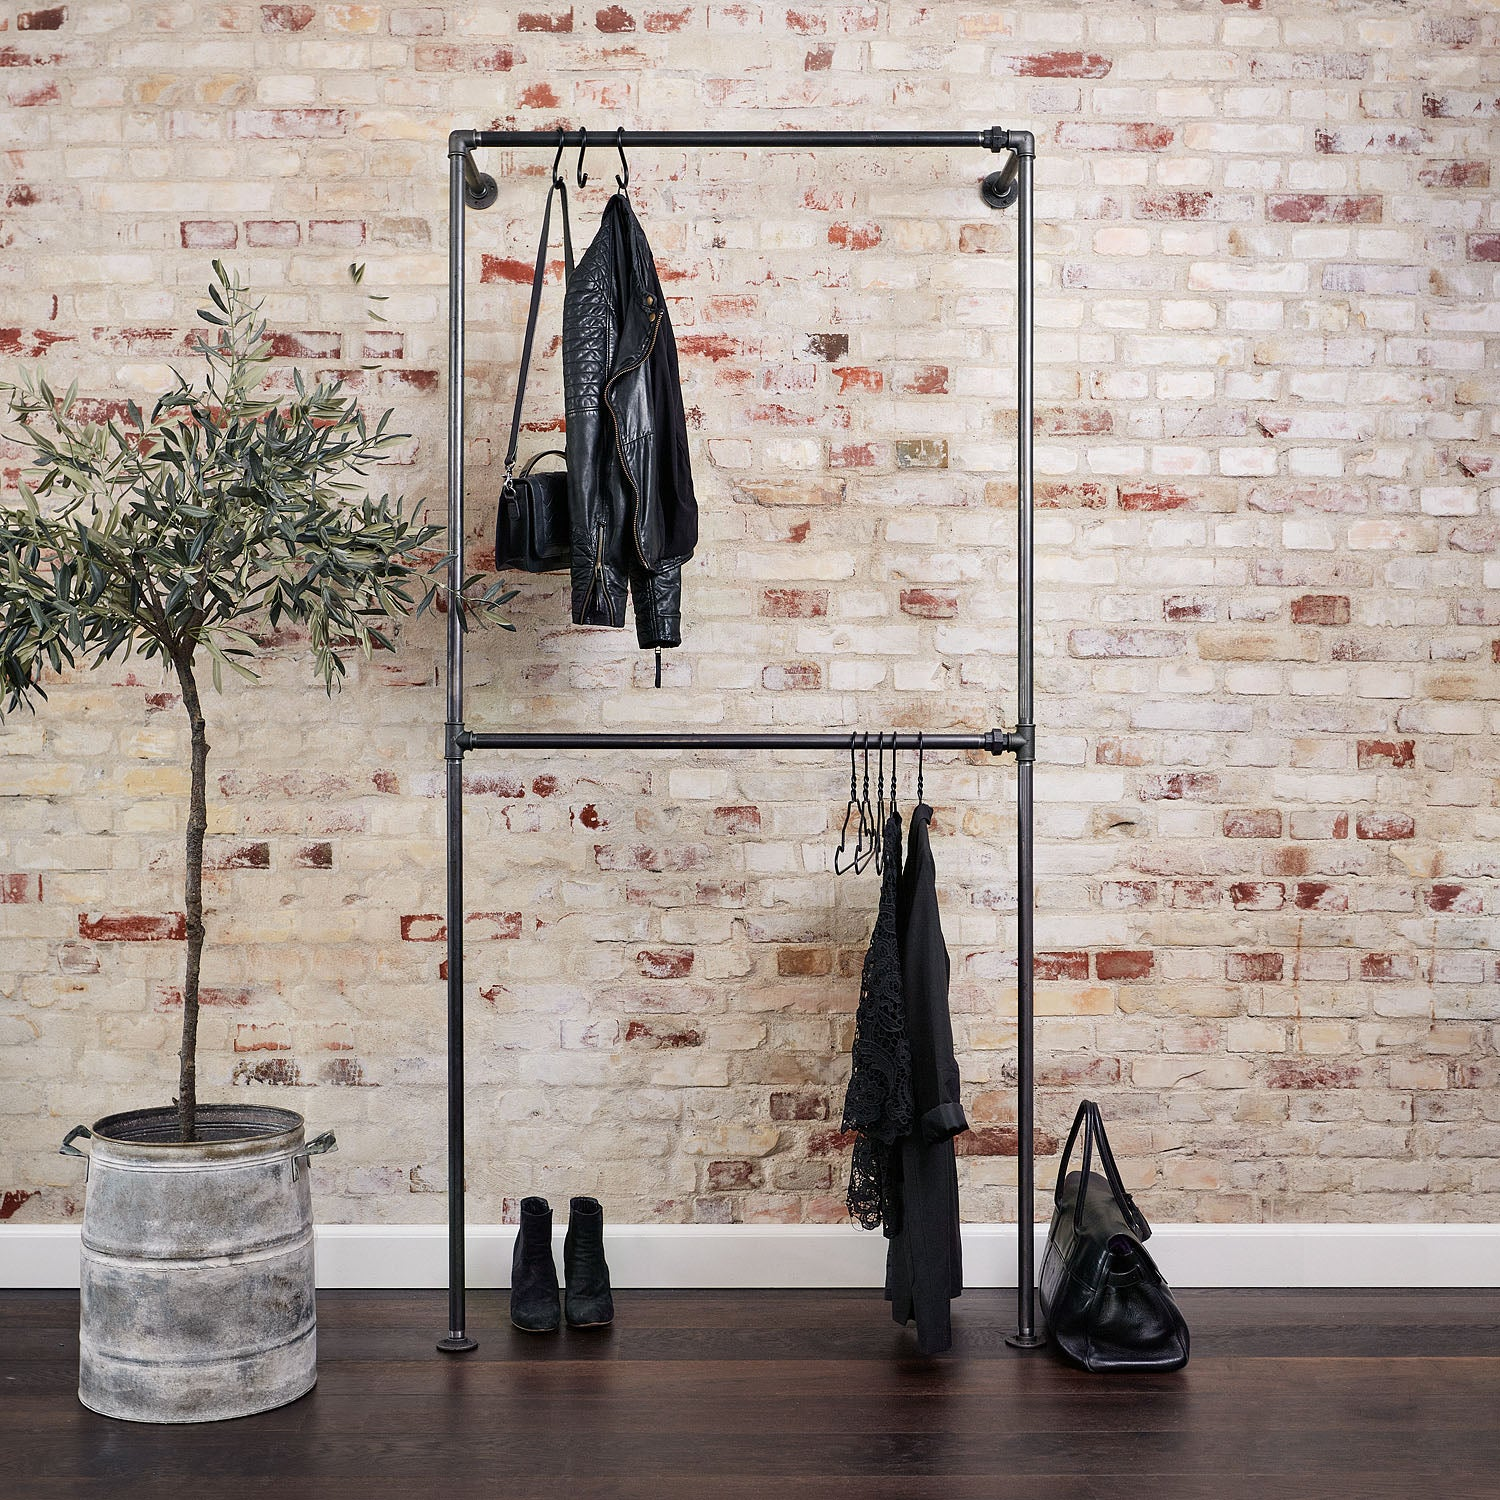 RackBuddy Bob Steele - Double industrial clothes rack in black water pipes